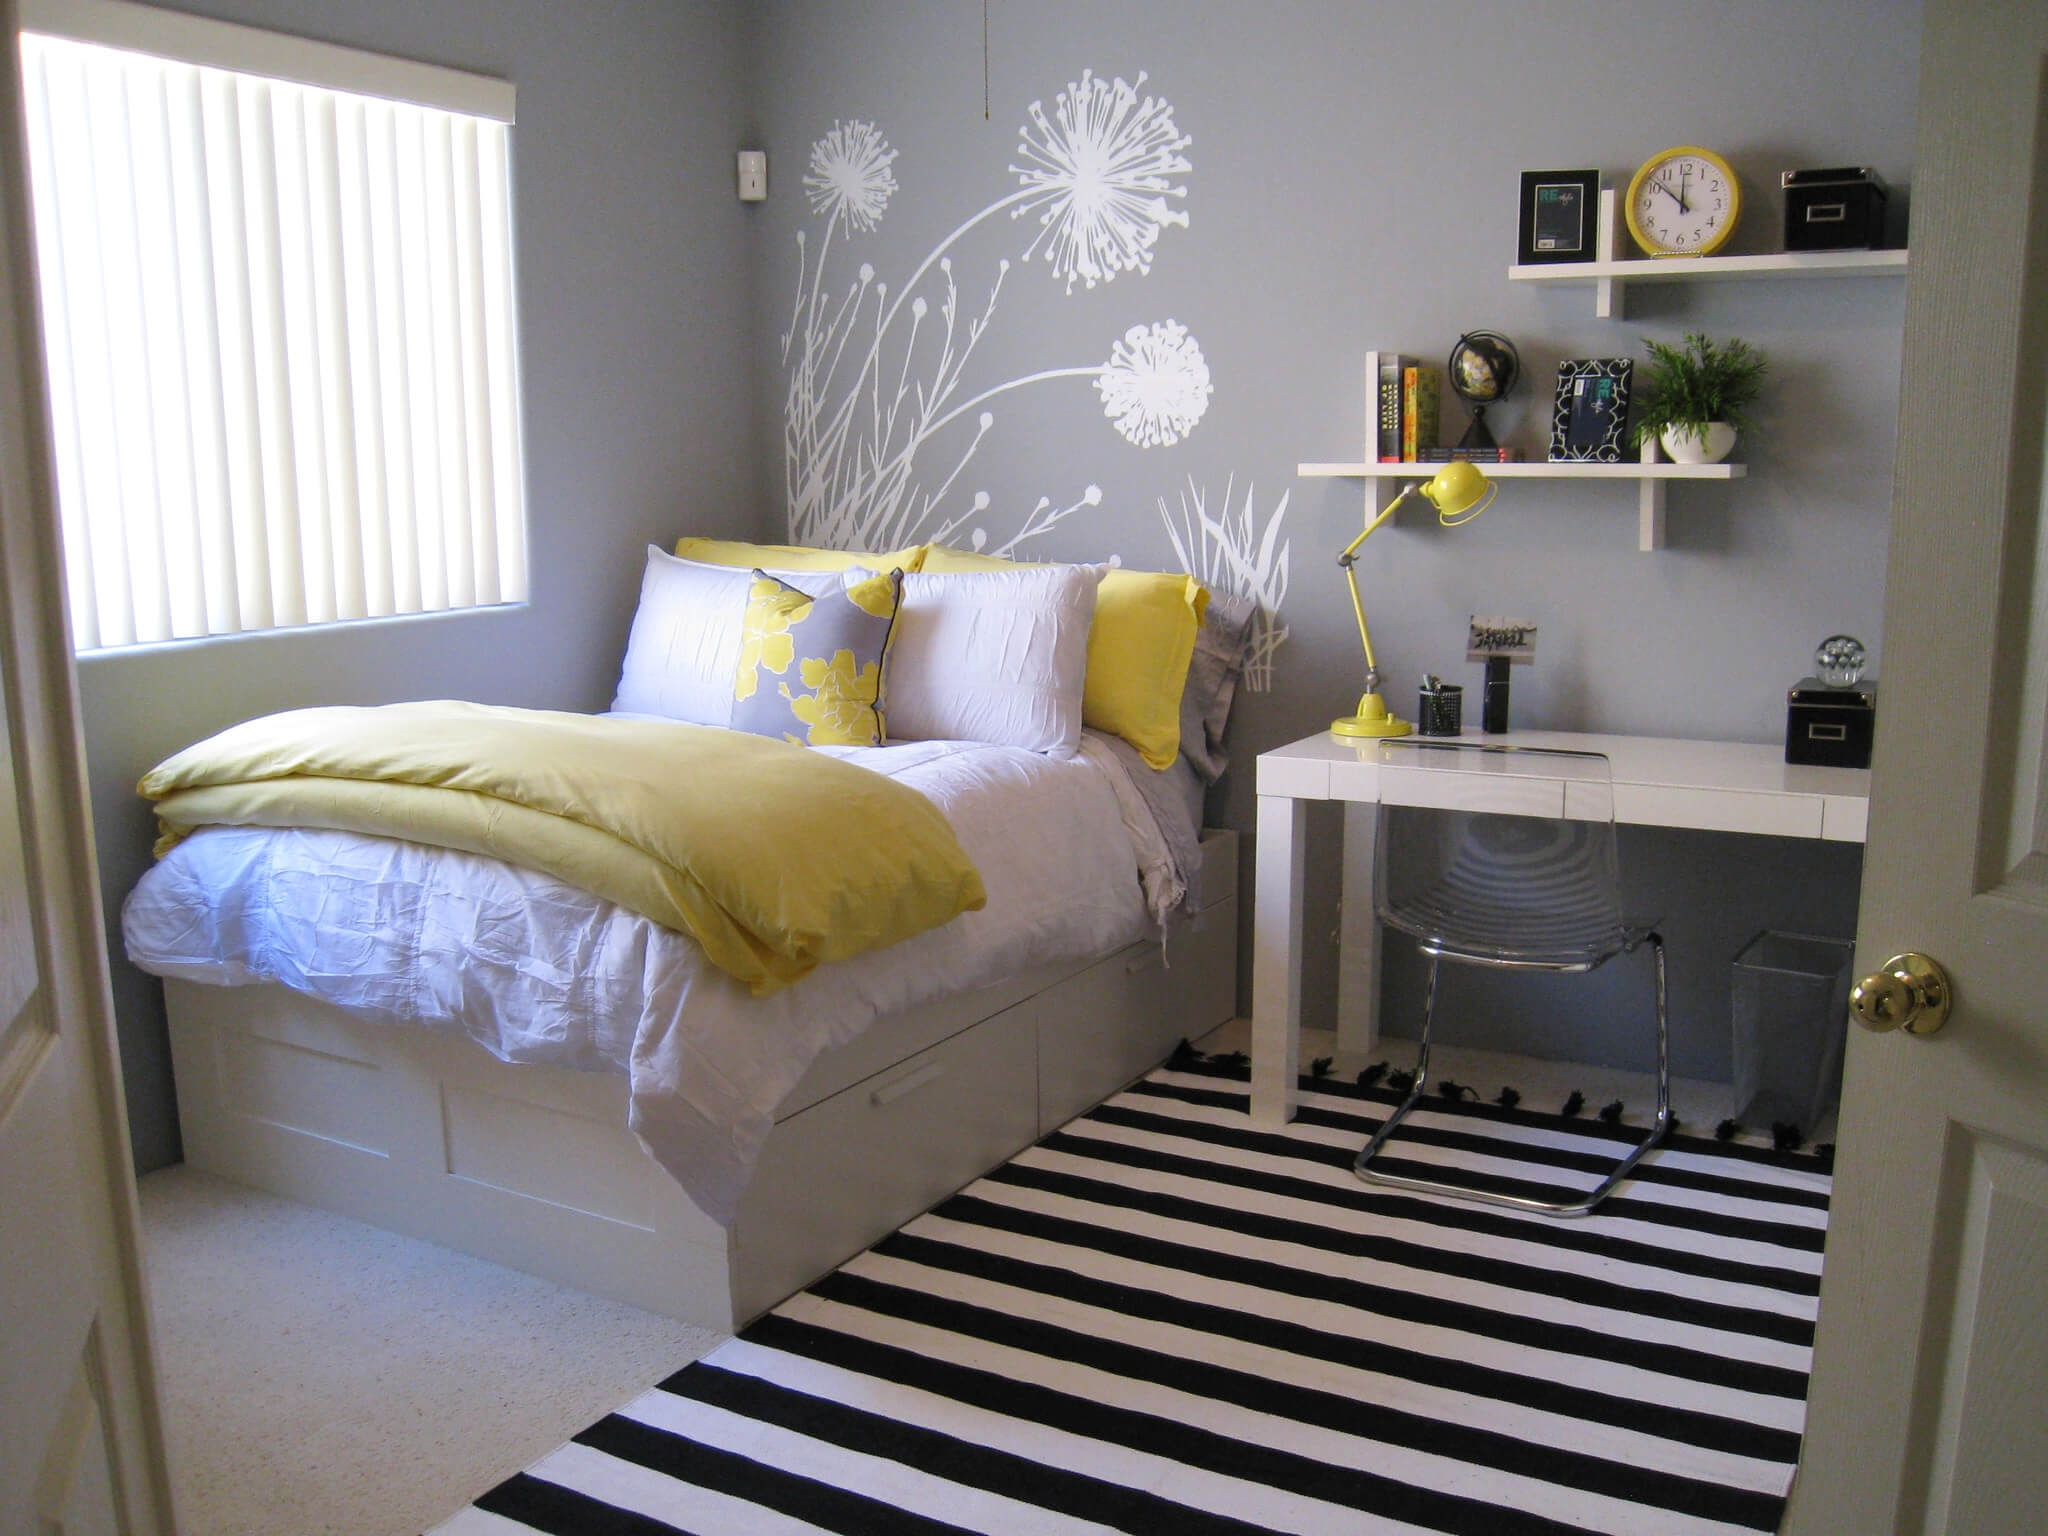 best small bedrooms ideas on pinterest decorating small inexpensive bedroom ideas for small rooms